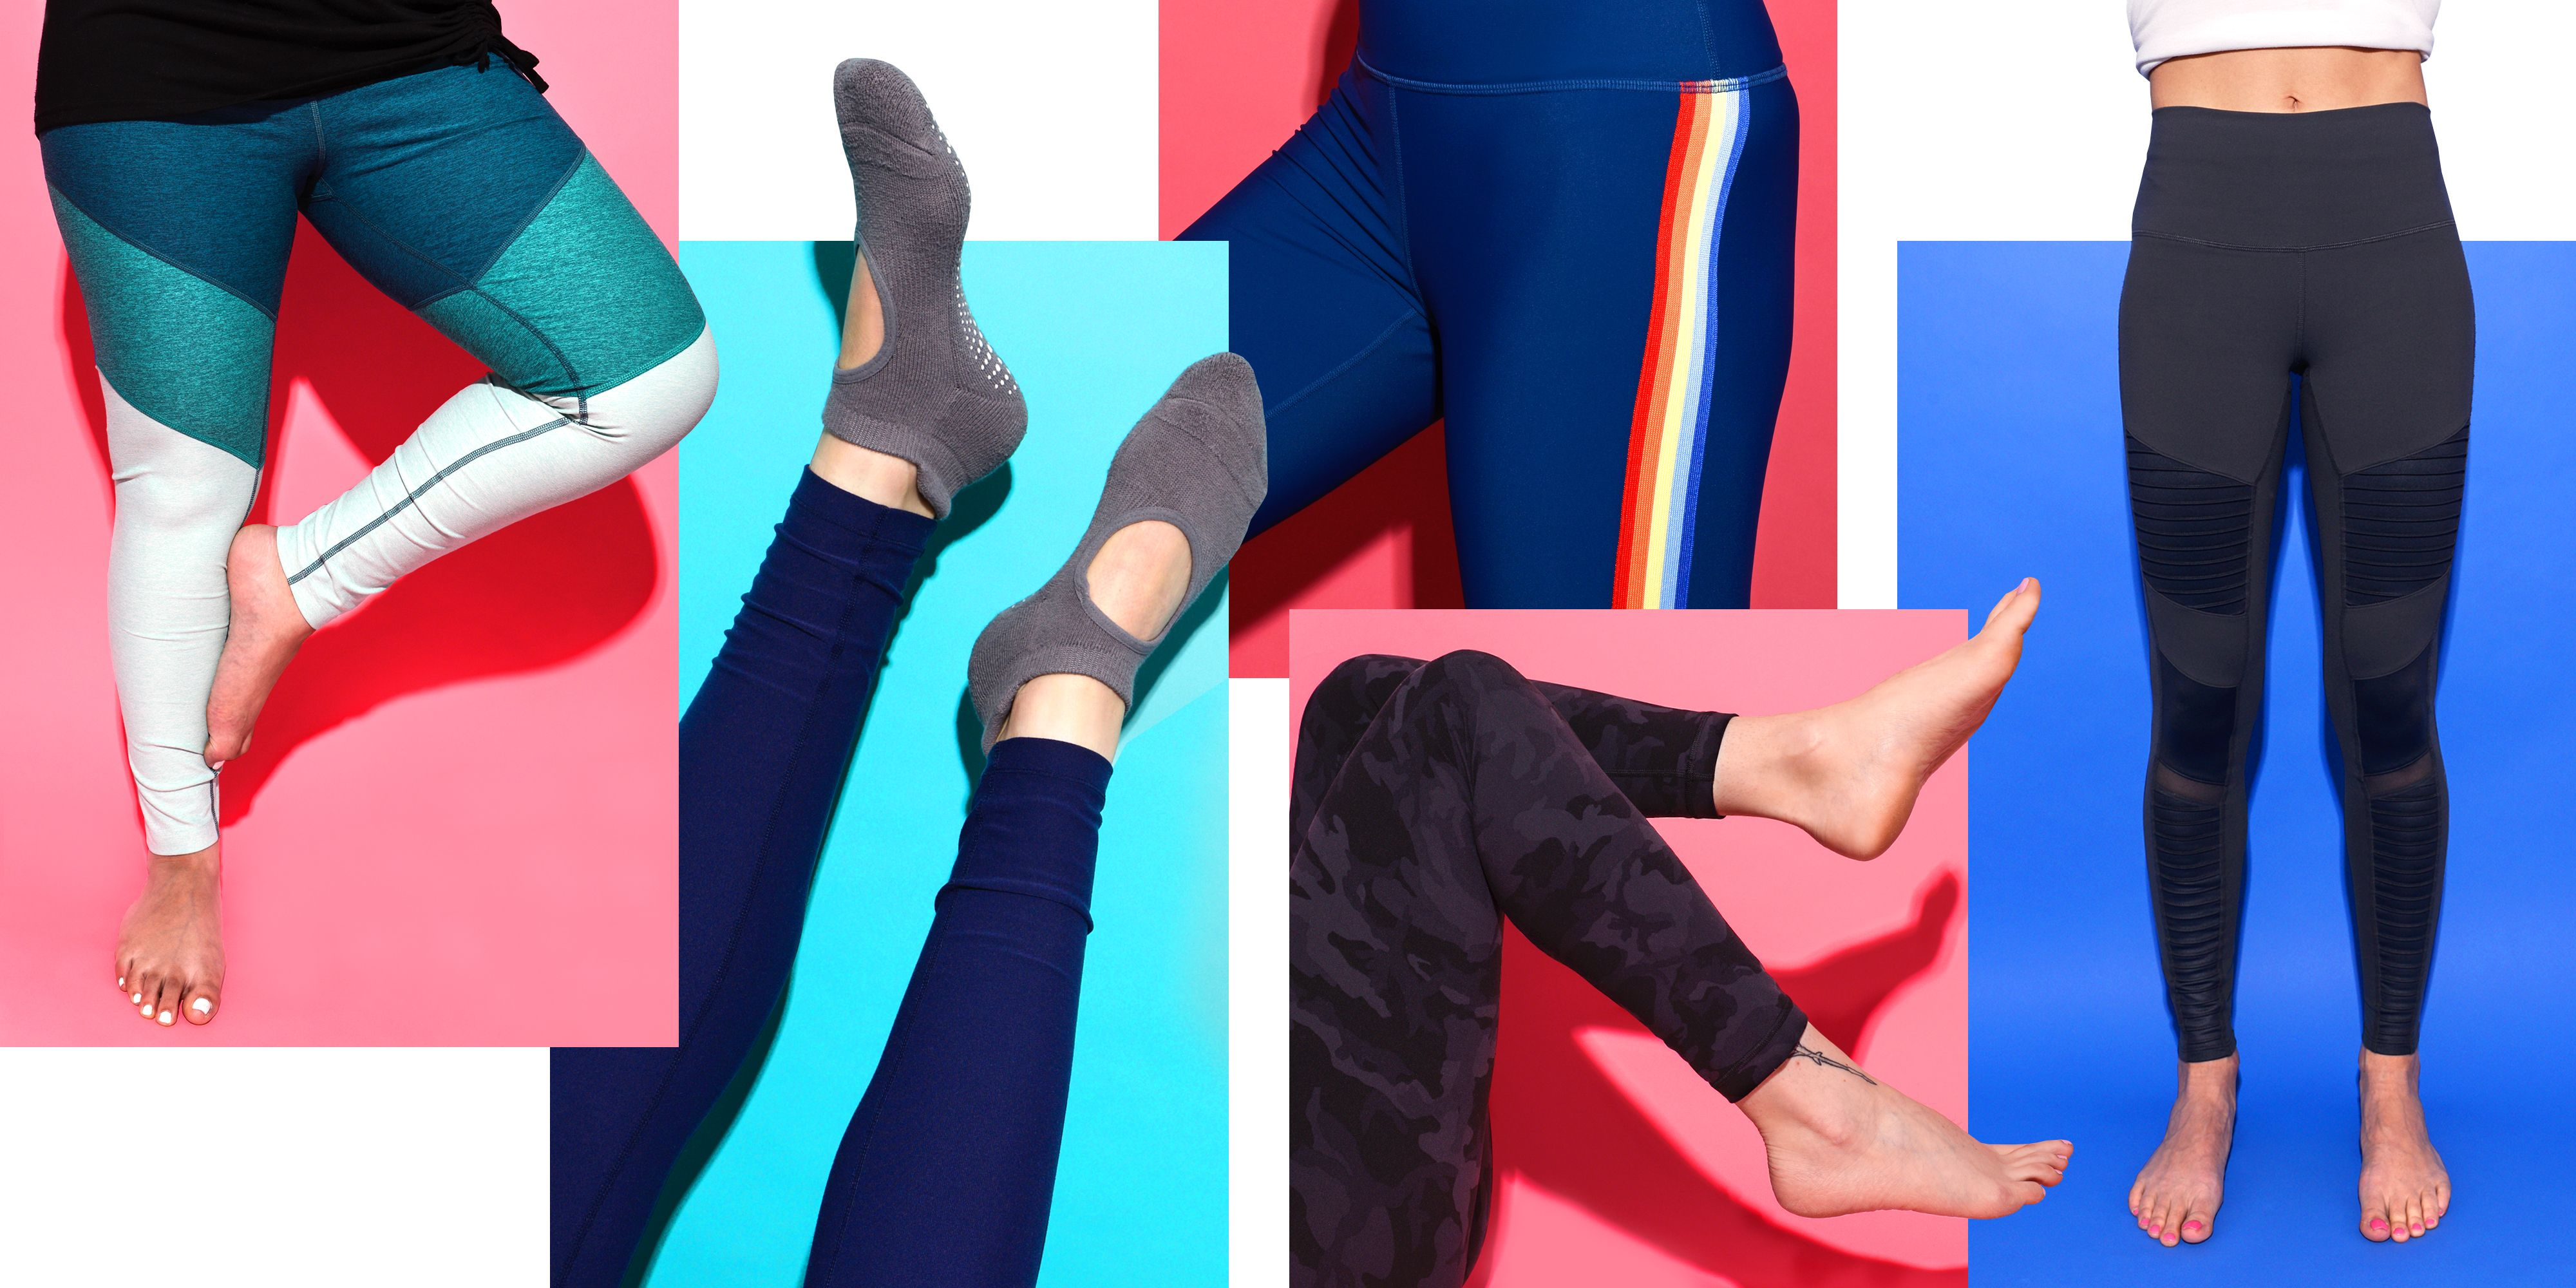 baa09c883fb9b9 15 Editors Tested 26 Styles of Women's Yoga Pants — Here Are the Best of  the Best